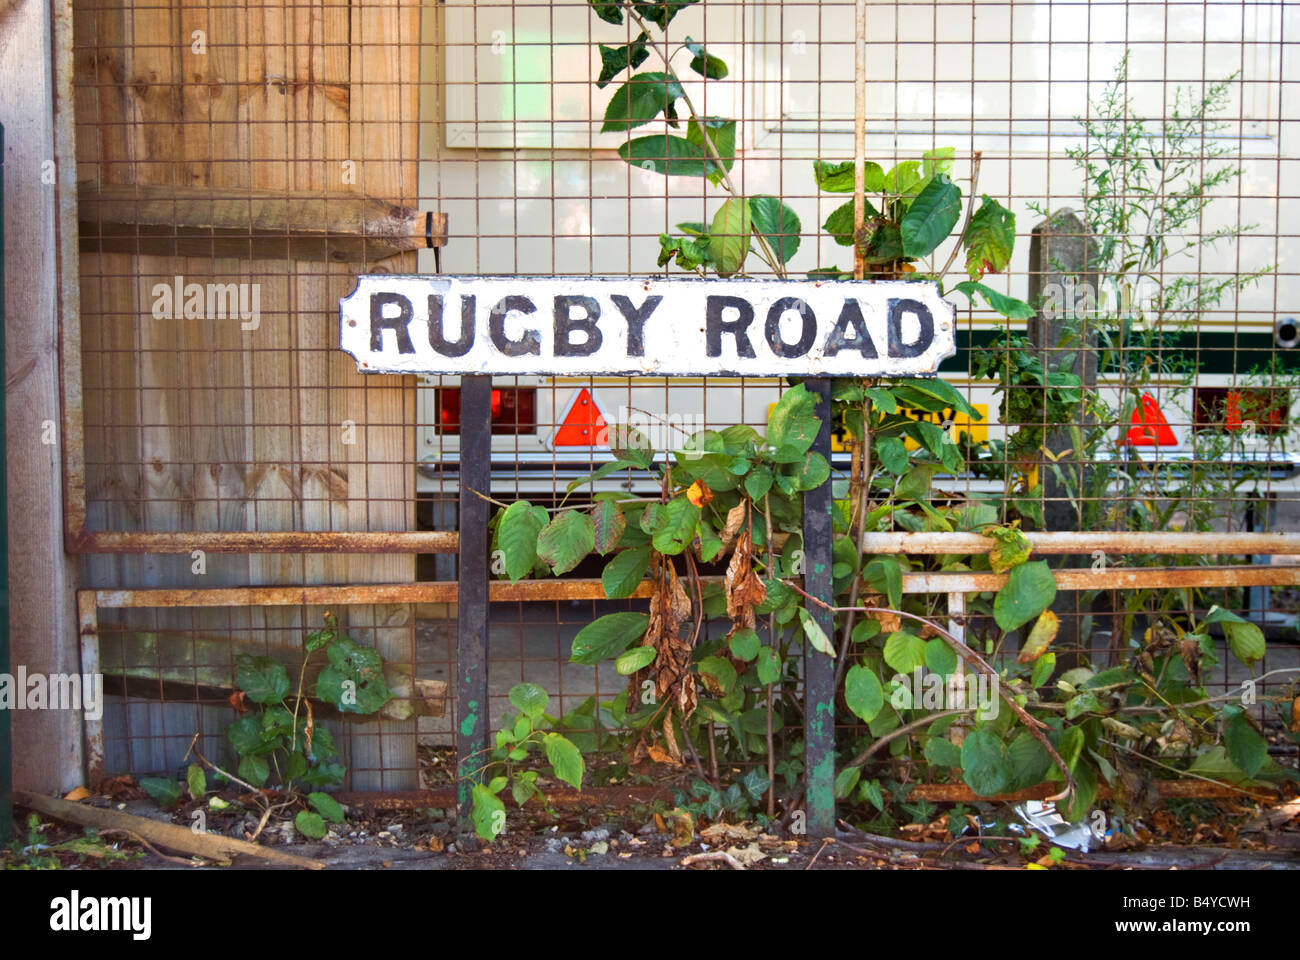 street sign for rugby road, close to the rugby stadium in twickenham southwest london, england Stock Photo